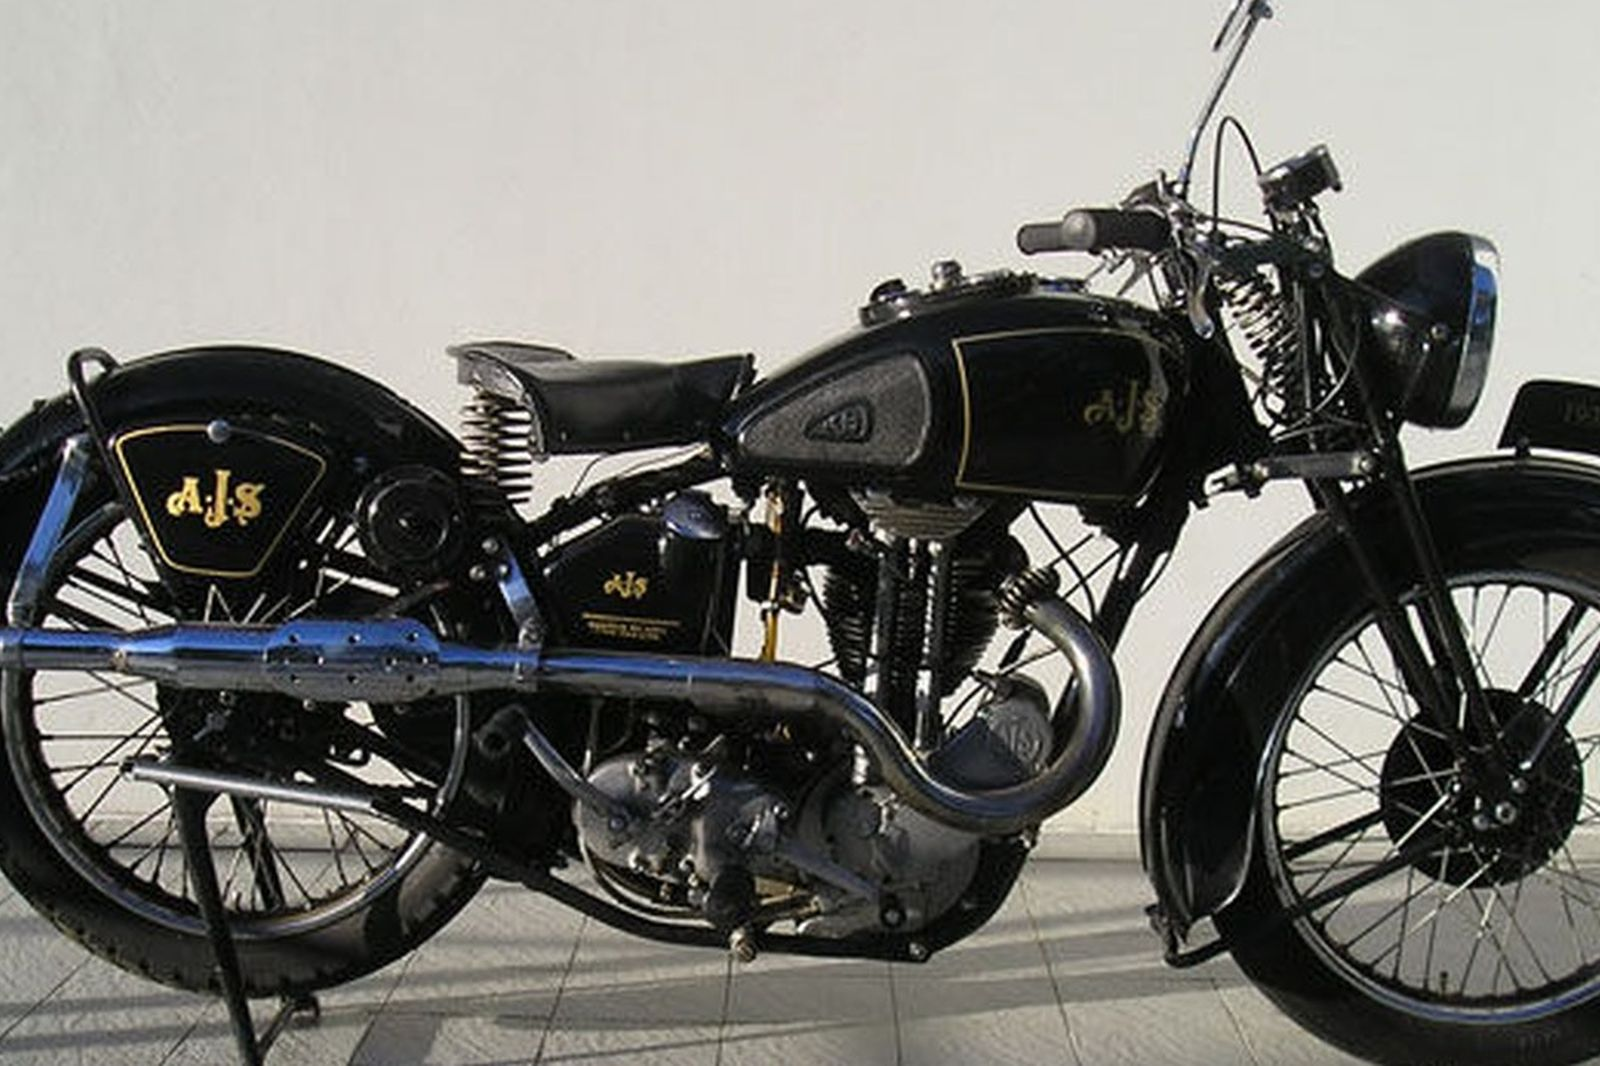 AJS 500cc Motorcycle